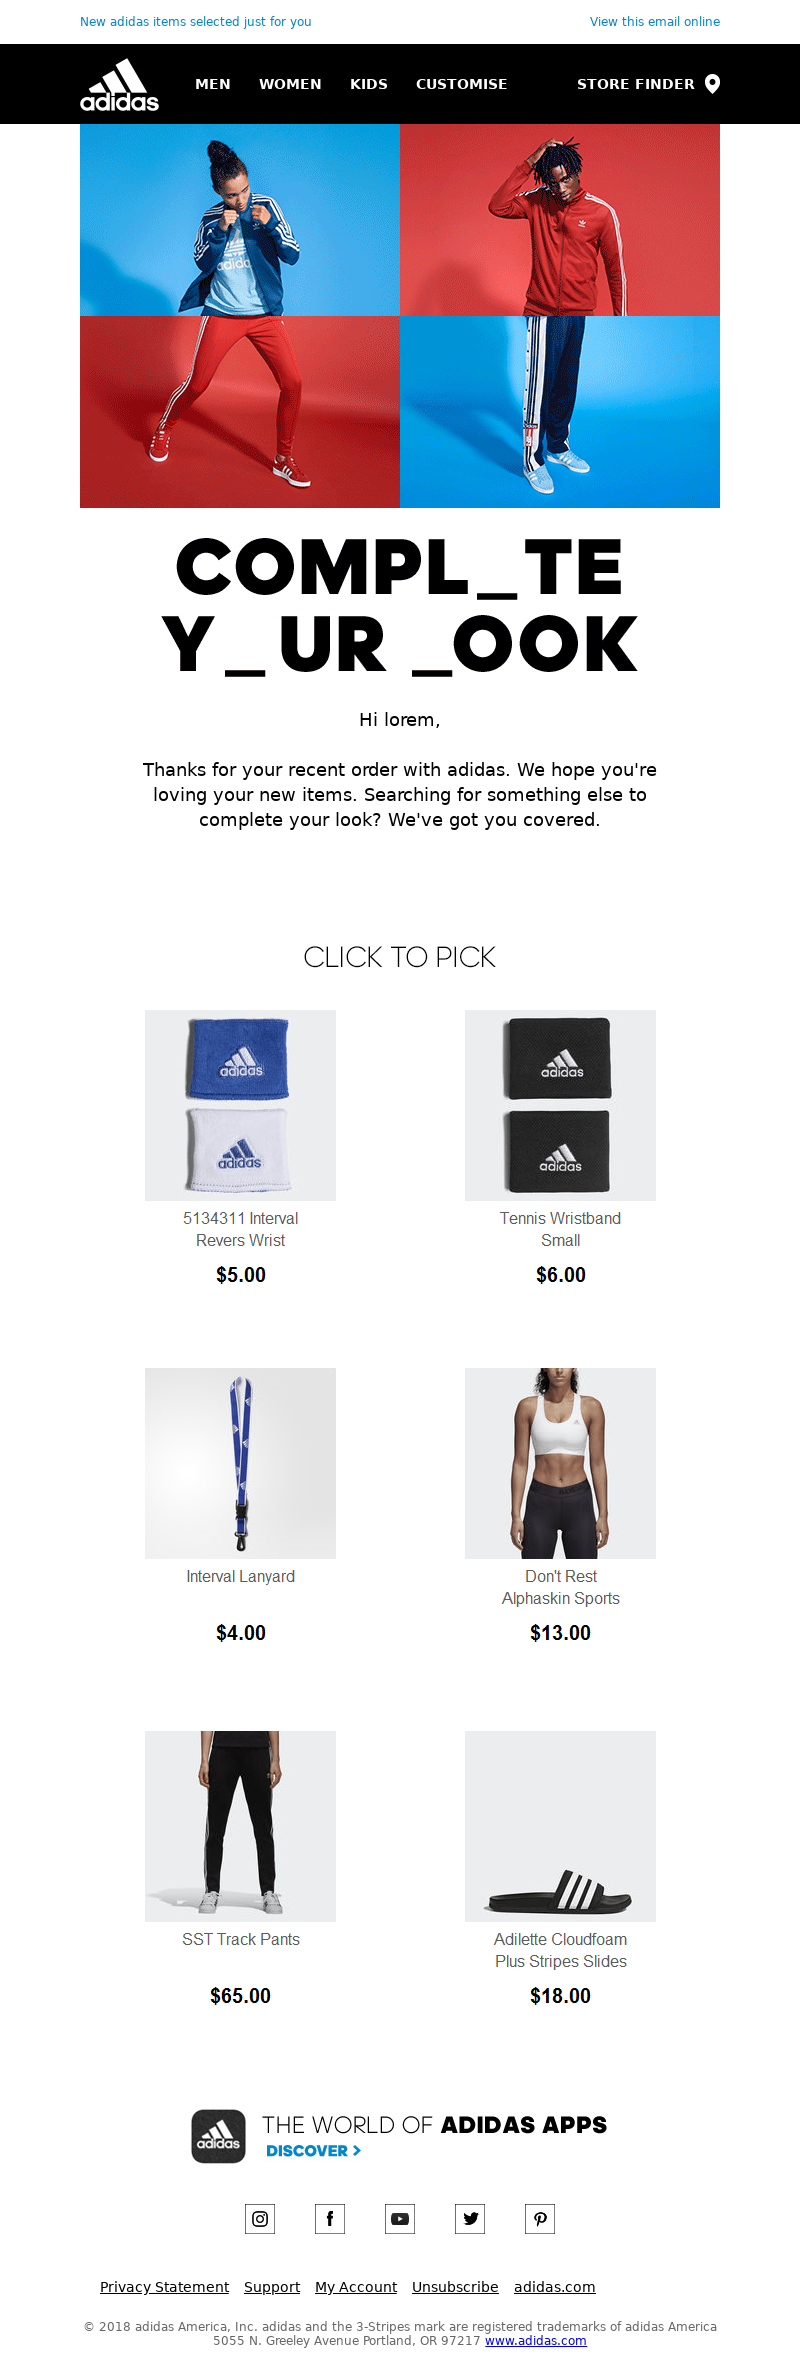 View this email online Adidas Logo MEN WOMEN KIDS STORE FINDER COMPLETE YOU